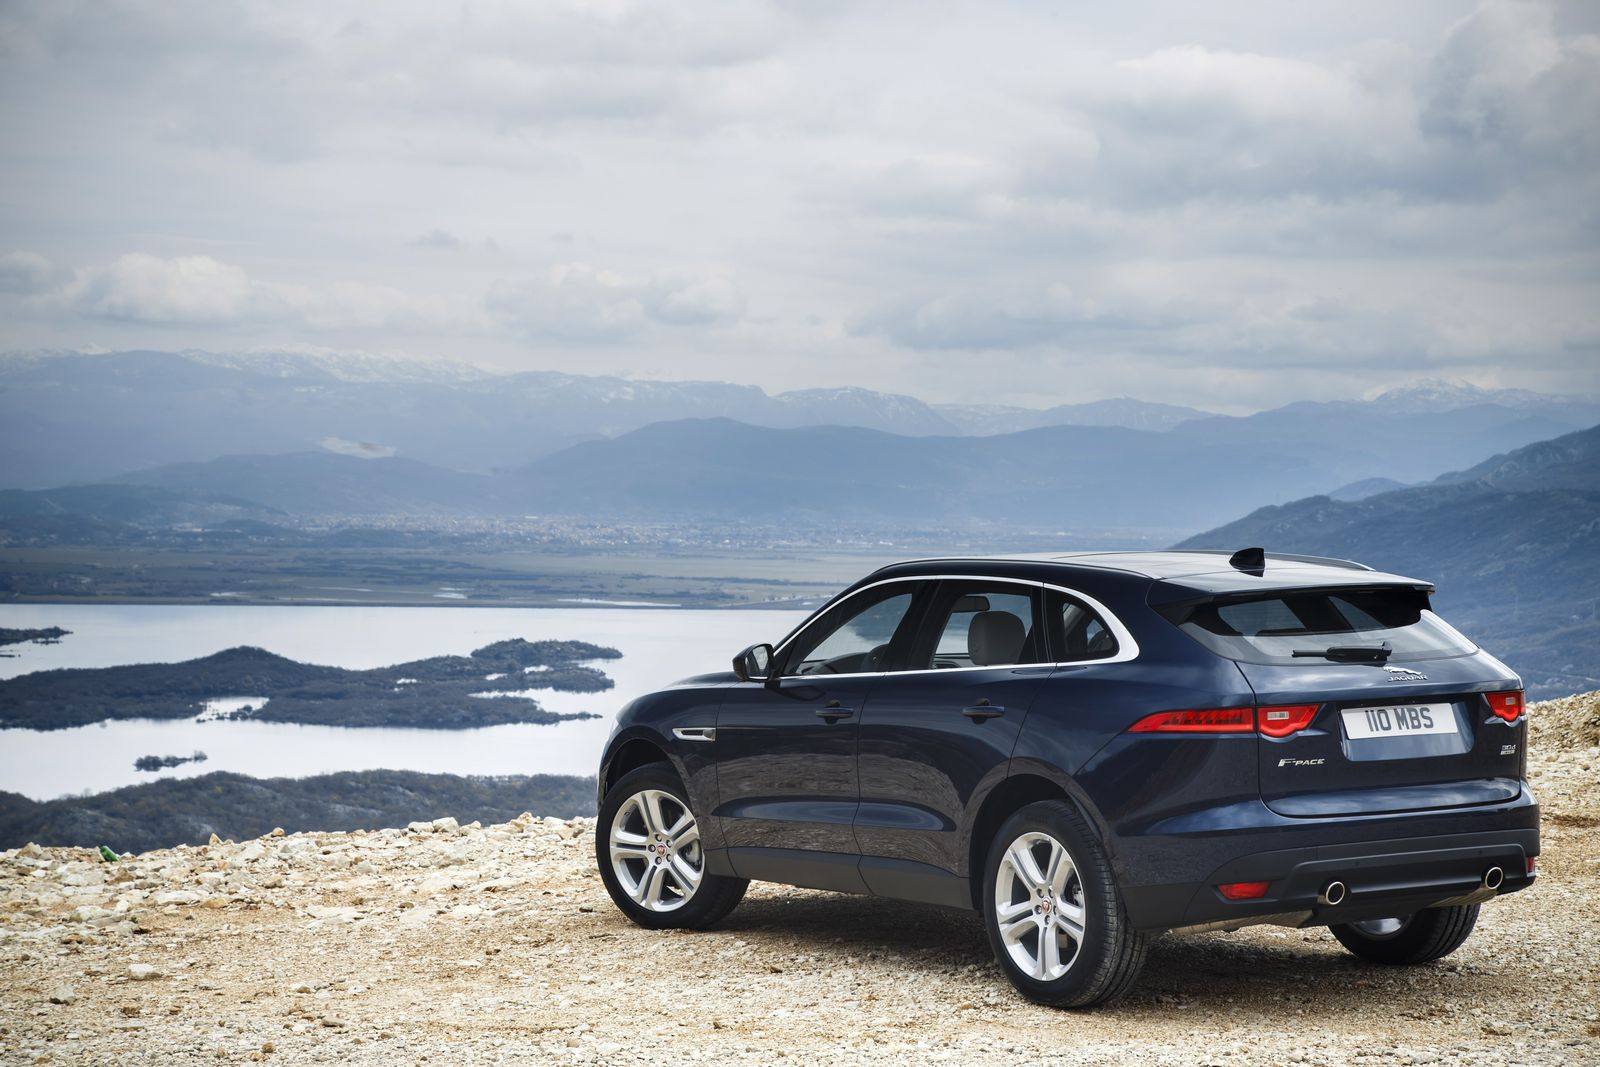 jaguar announces 240 hp twin turbo diesel for 2018 f pace xe and xf autoevolution. Black Bedroom Furniture Sets. Home Design Ideas